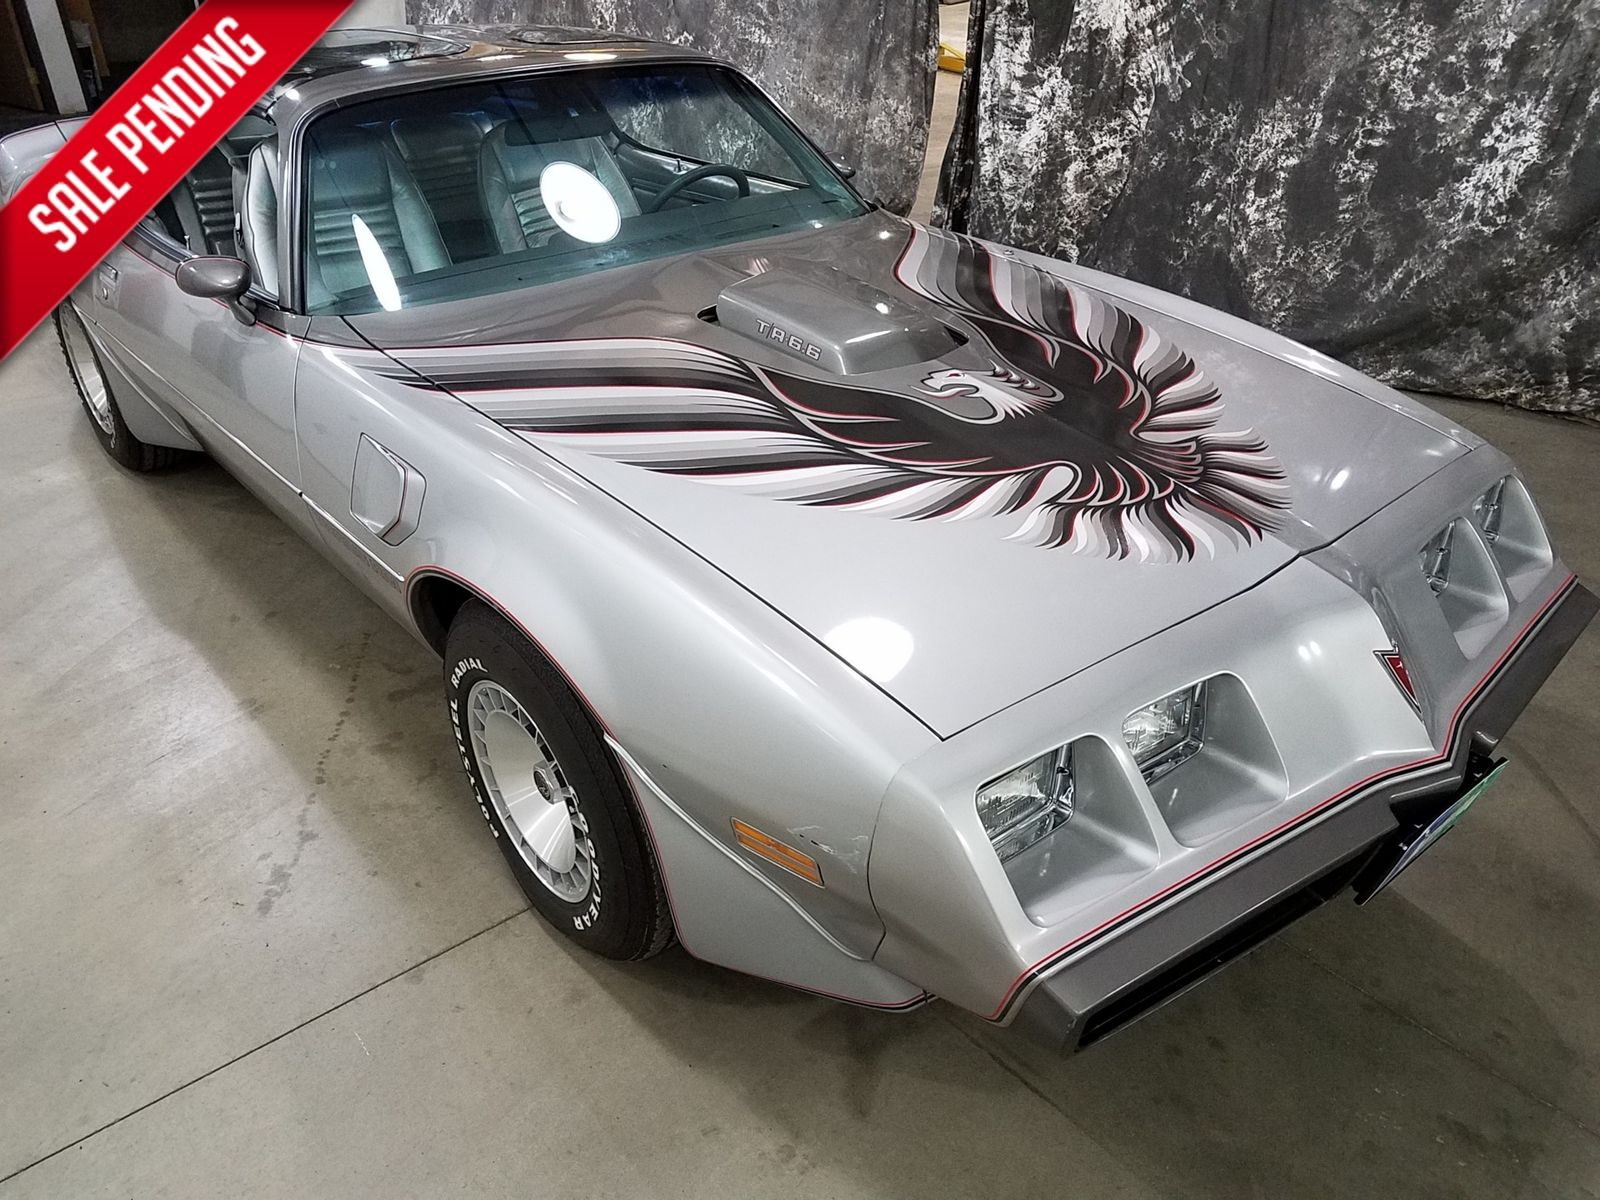 1979 Pontiac Trans Am Ws6 10th Anv City Nd Autorama Auto Sales Build Sheet In Dickinson